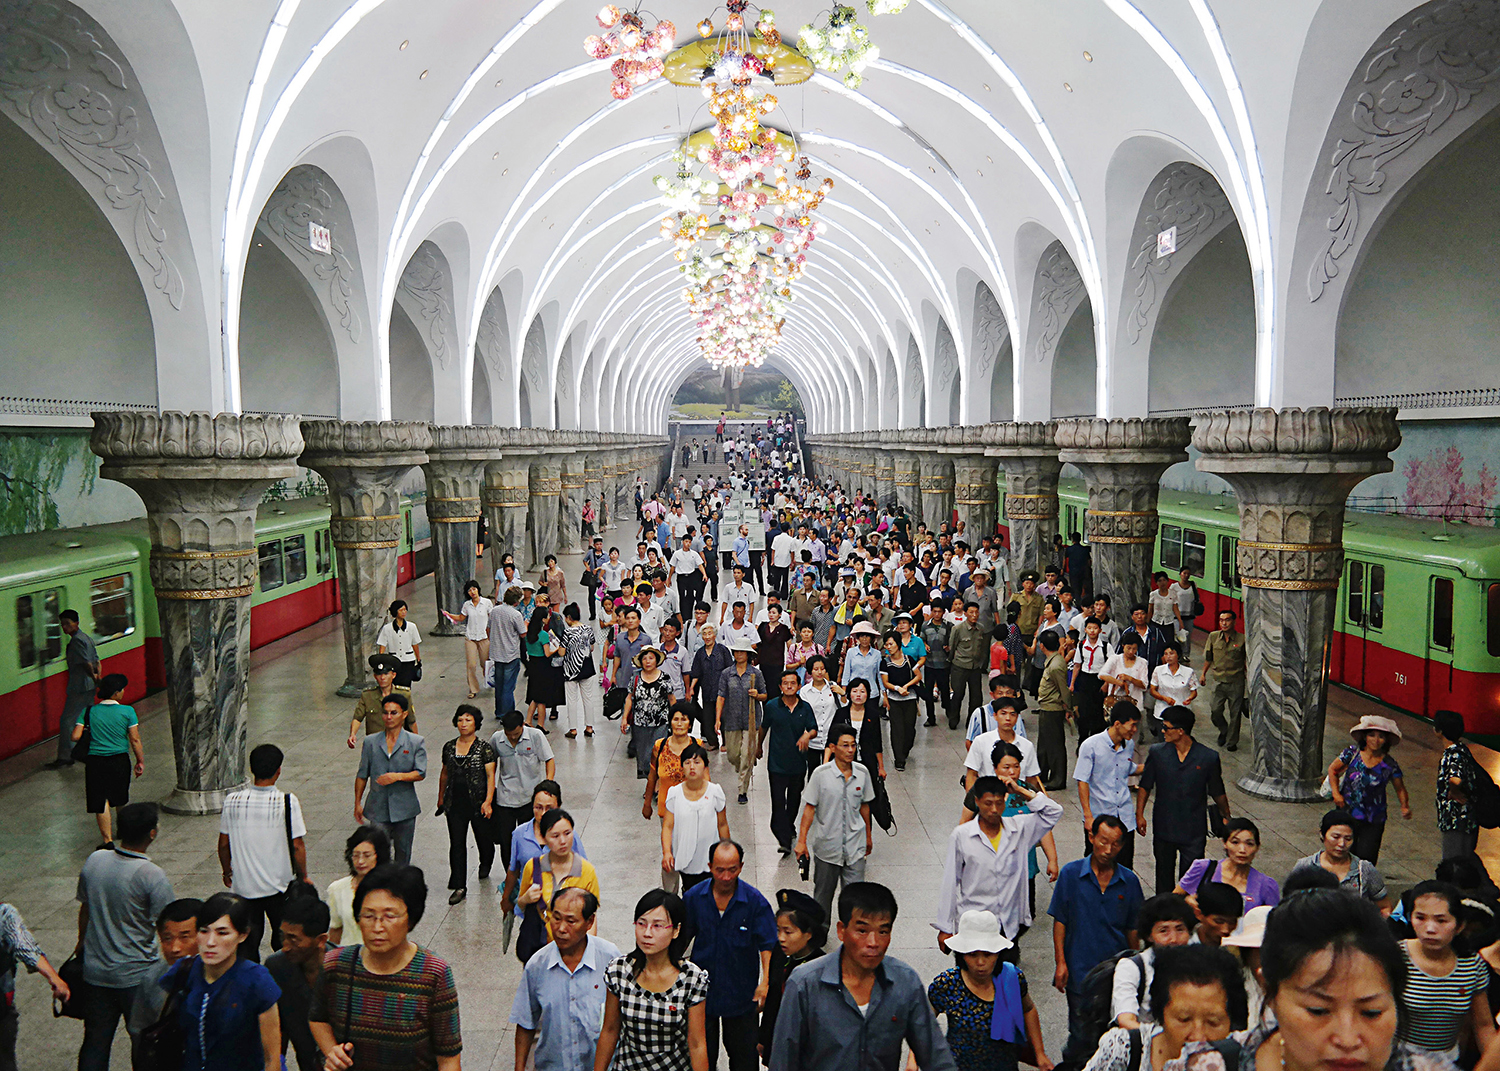 Yonggwang metro was constructed in 1965. It baroque inspired arches and ornate marble and granite flourishes are inspired by Moscow's underground railway system